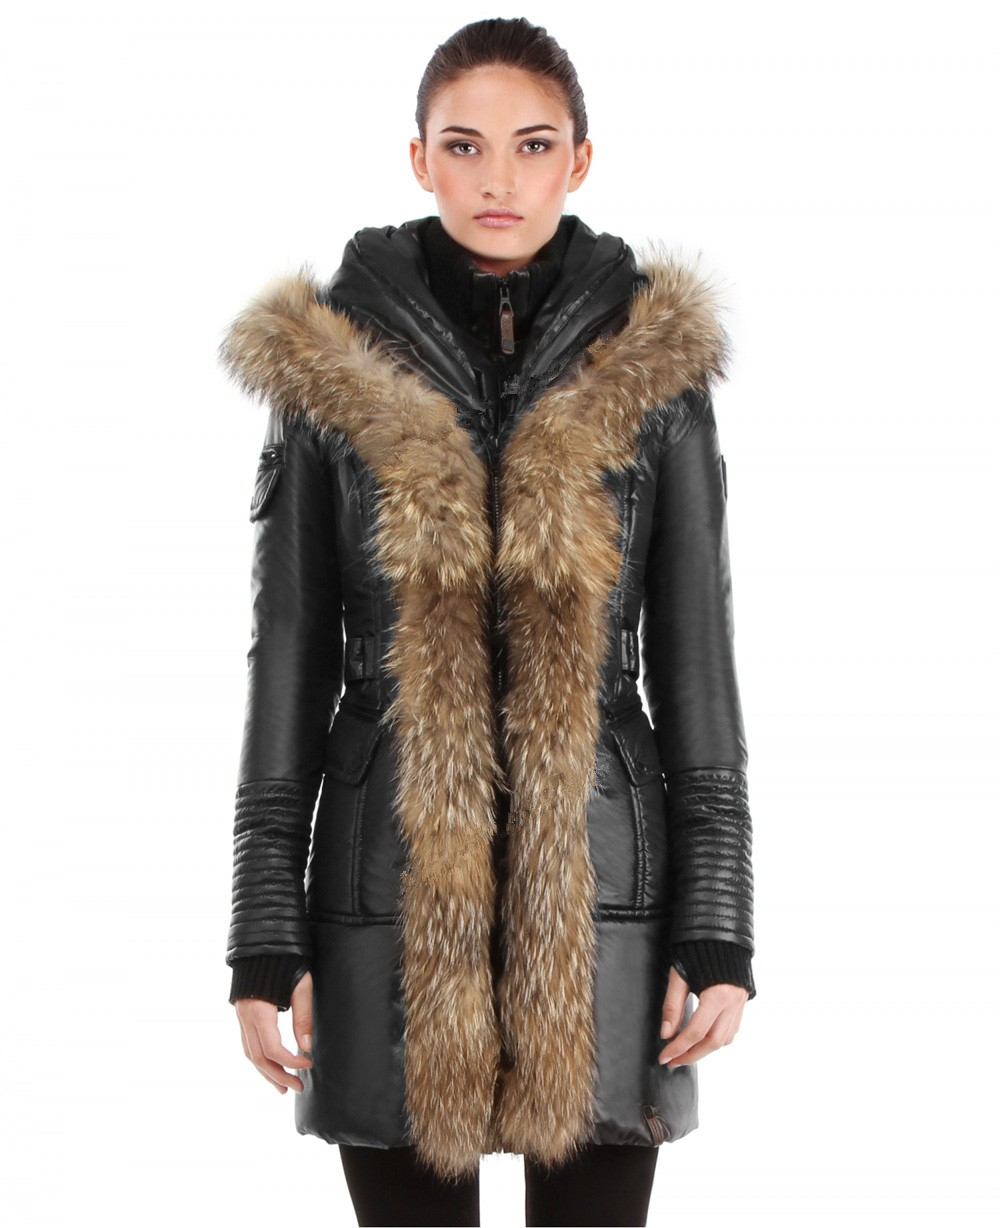 2014 new women's medium-long genuine full leather rabbit hair fur coat jacket outerwear with real fox fur collar overcoat(China (Mainland))